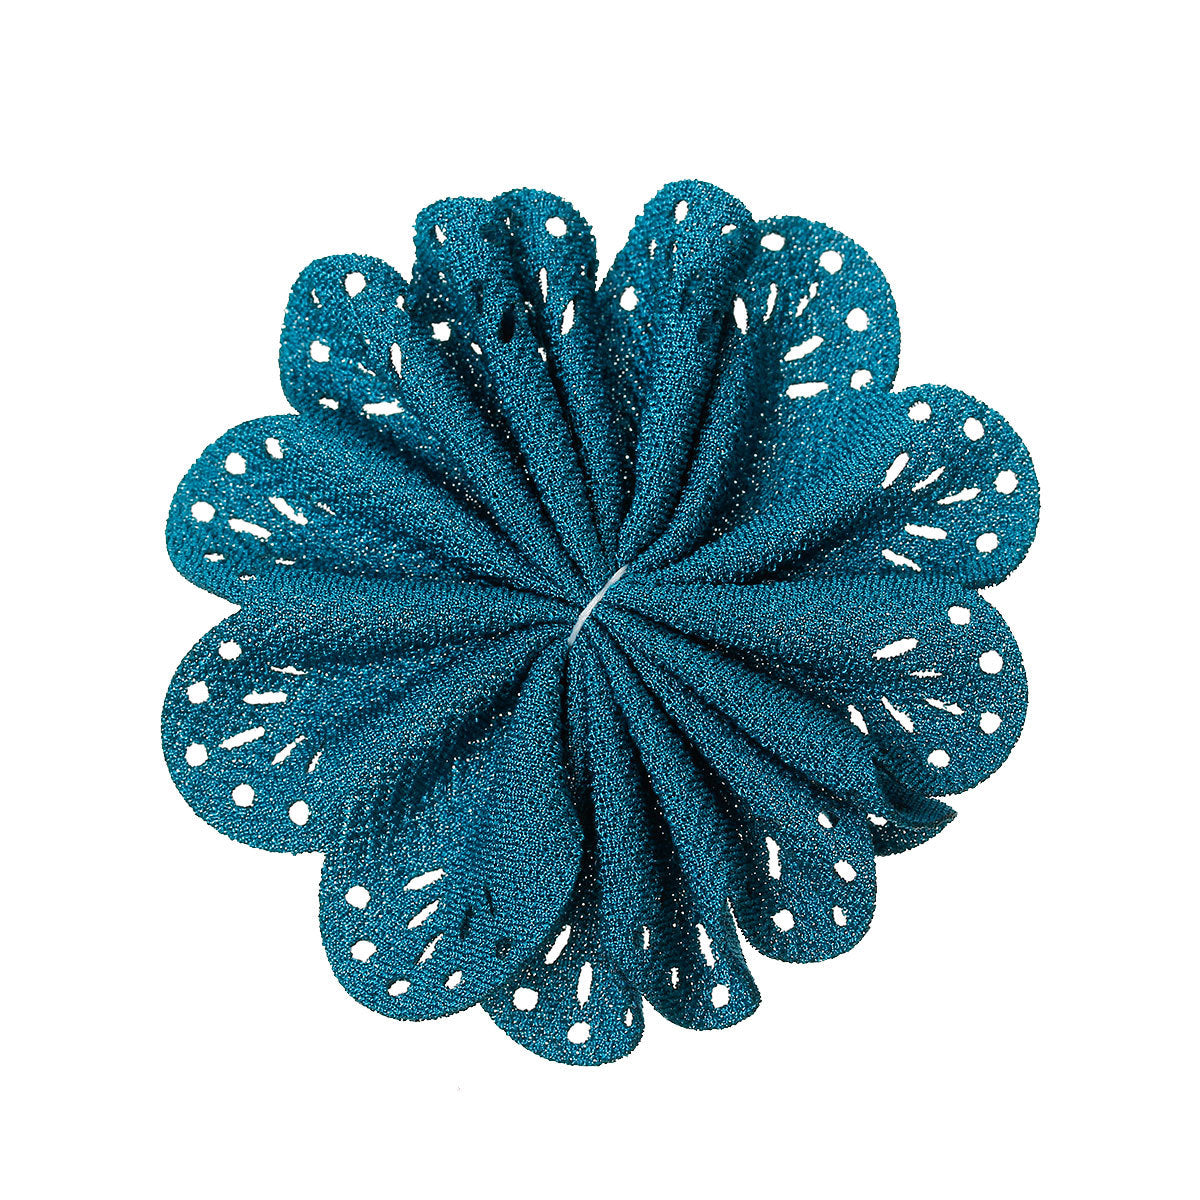 Peacock Blue Fabric Flower - 3 1/8 inch (7.8cm) - Unfinished DIY - Textured Fabric Flowers -  DIY Baby Headbands Wholesale Craft supplies